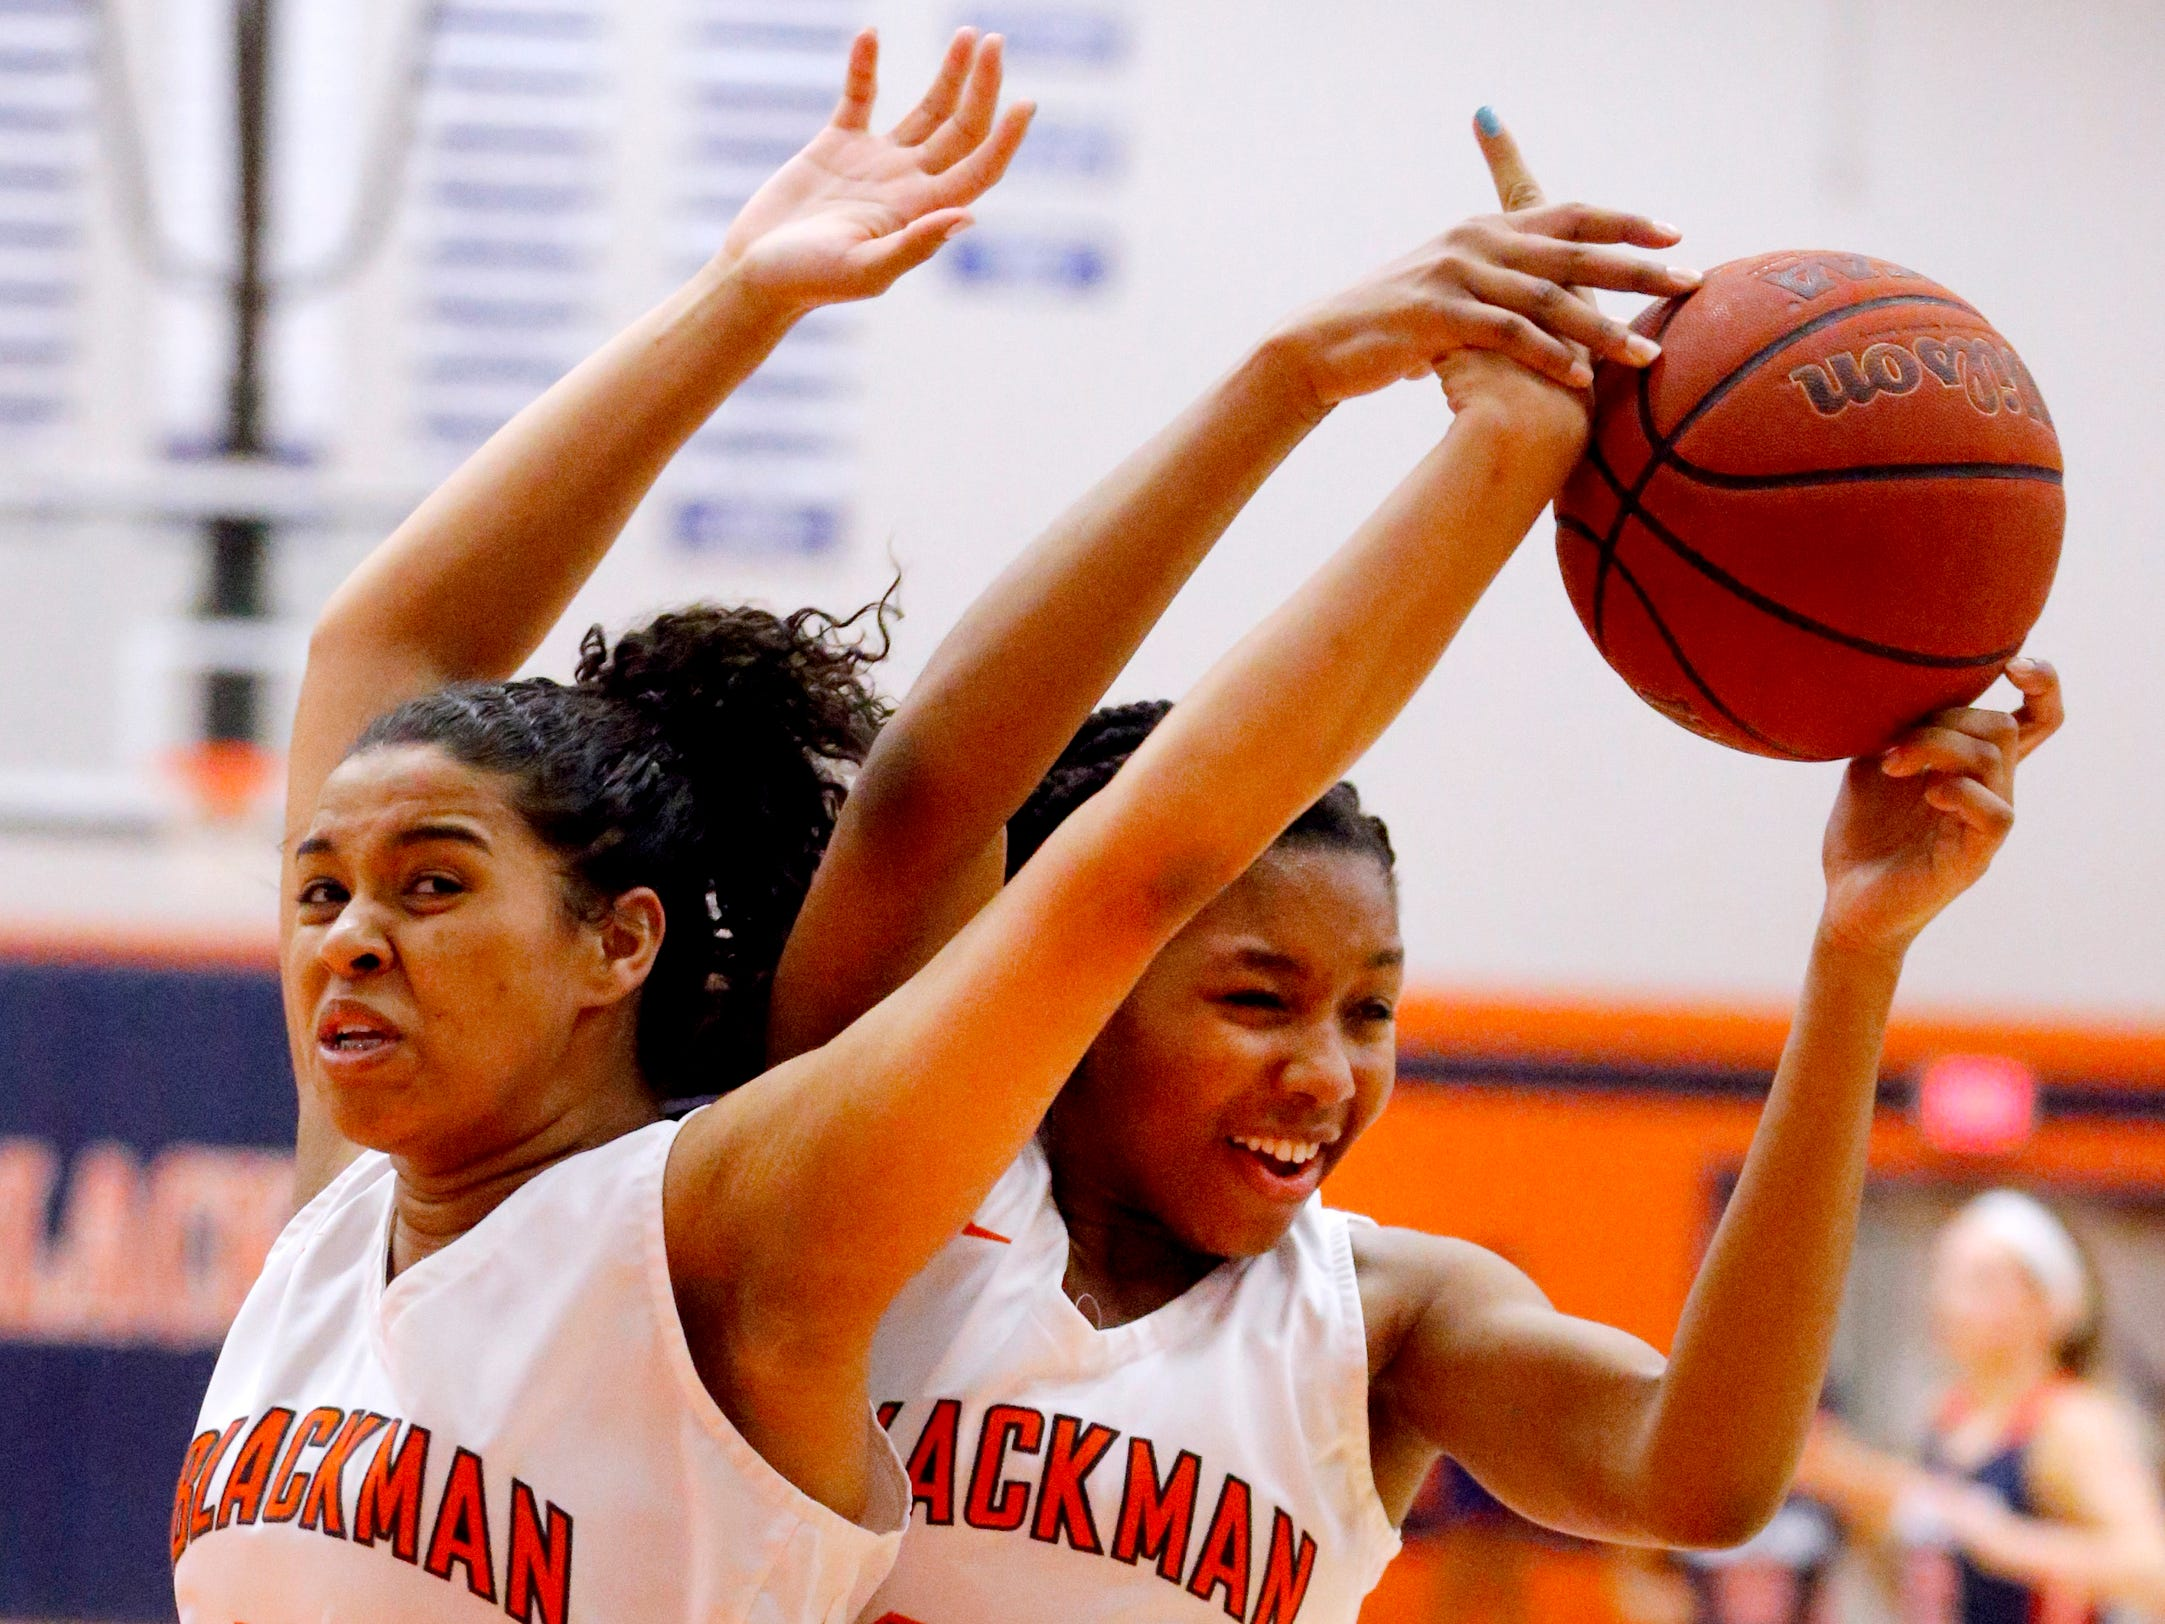 Blackman's Aaliyah Green (25) and Iyana Moore (23) both go after a rebound during the game against Oakland on Friday, Feb. 8, 2019.